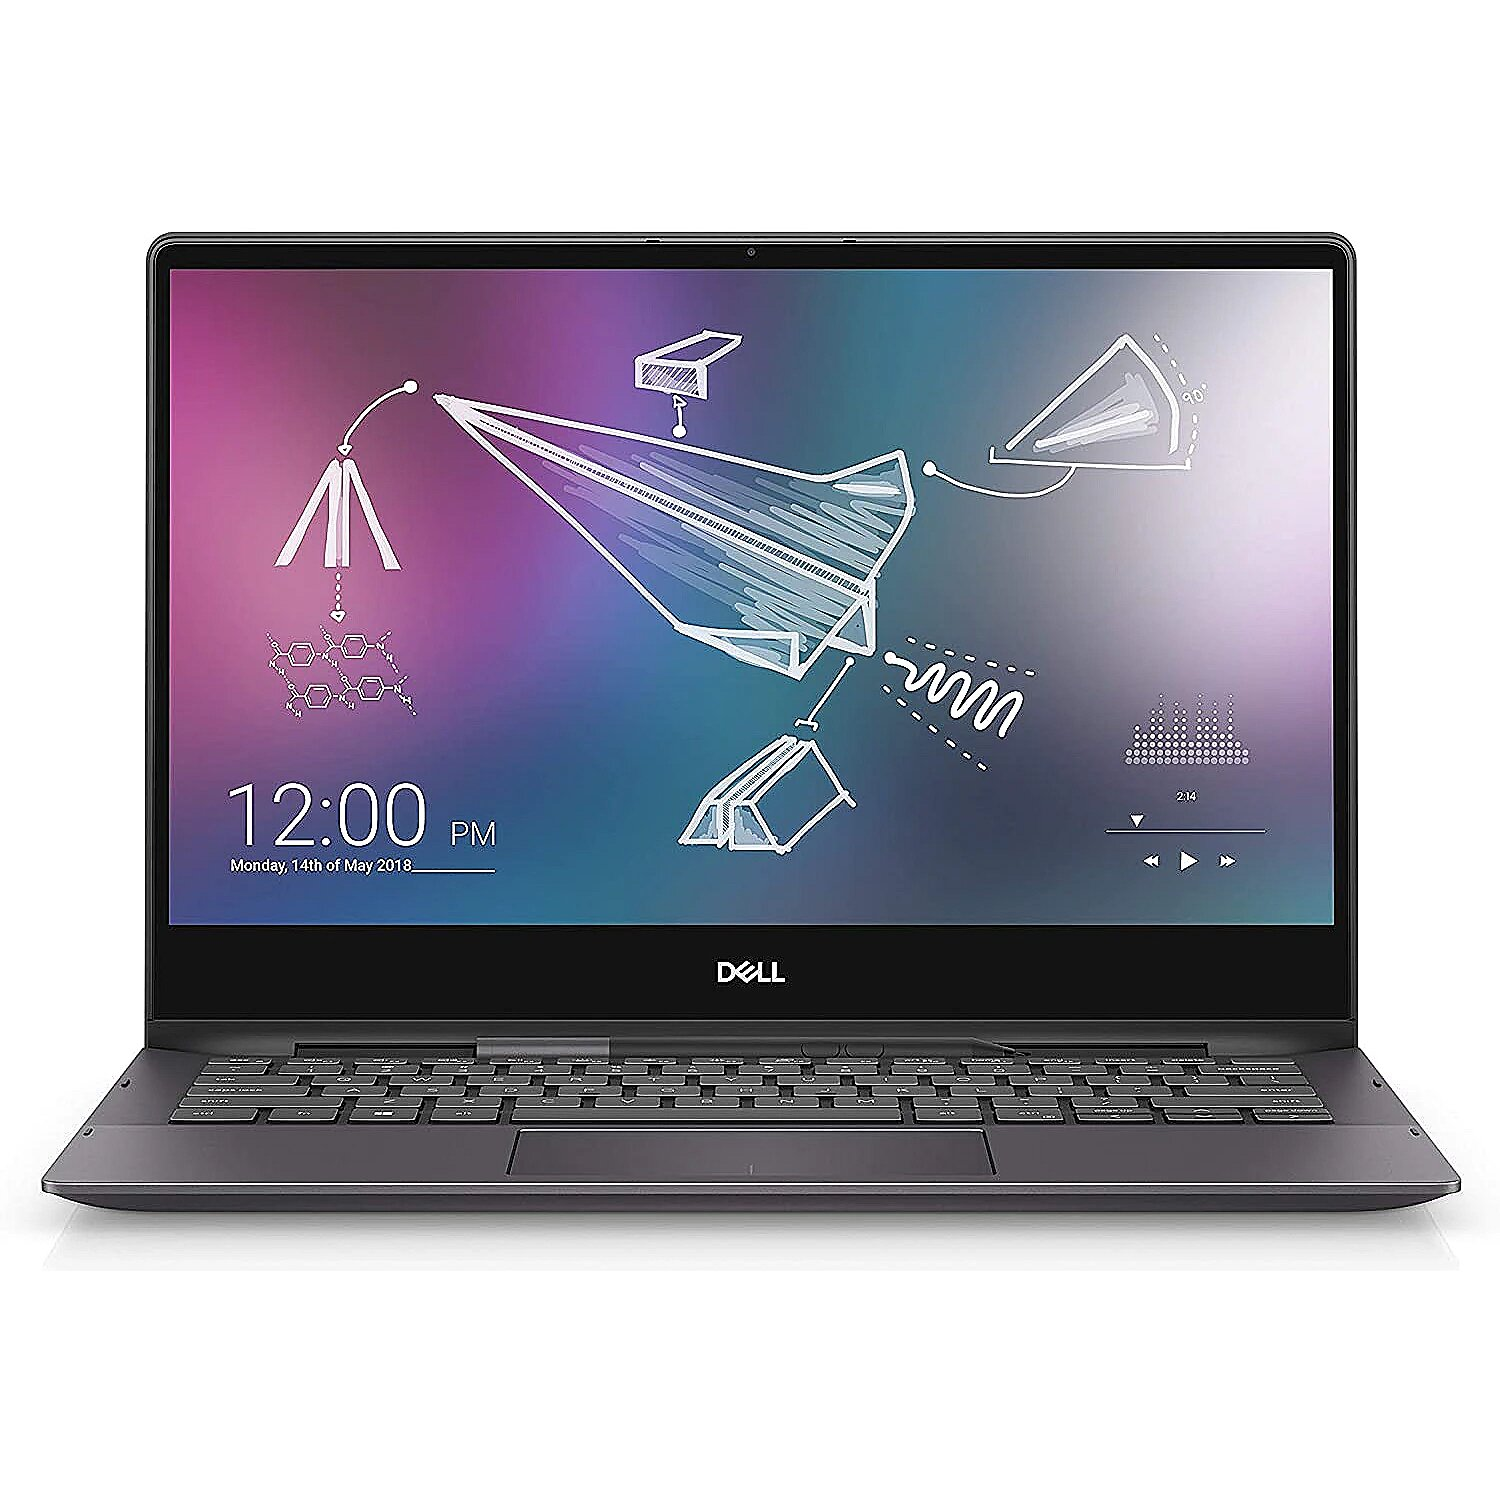 Dell Inspiron 13 (7391) 2in1 Black, 13.3